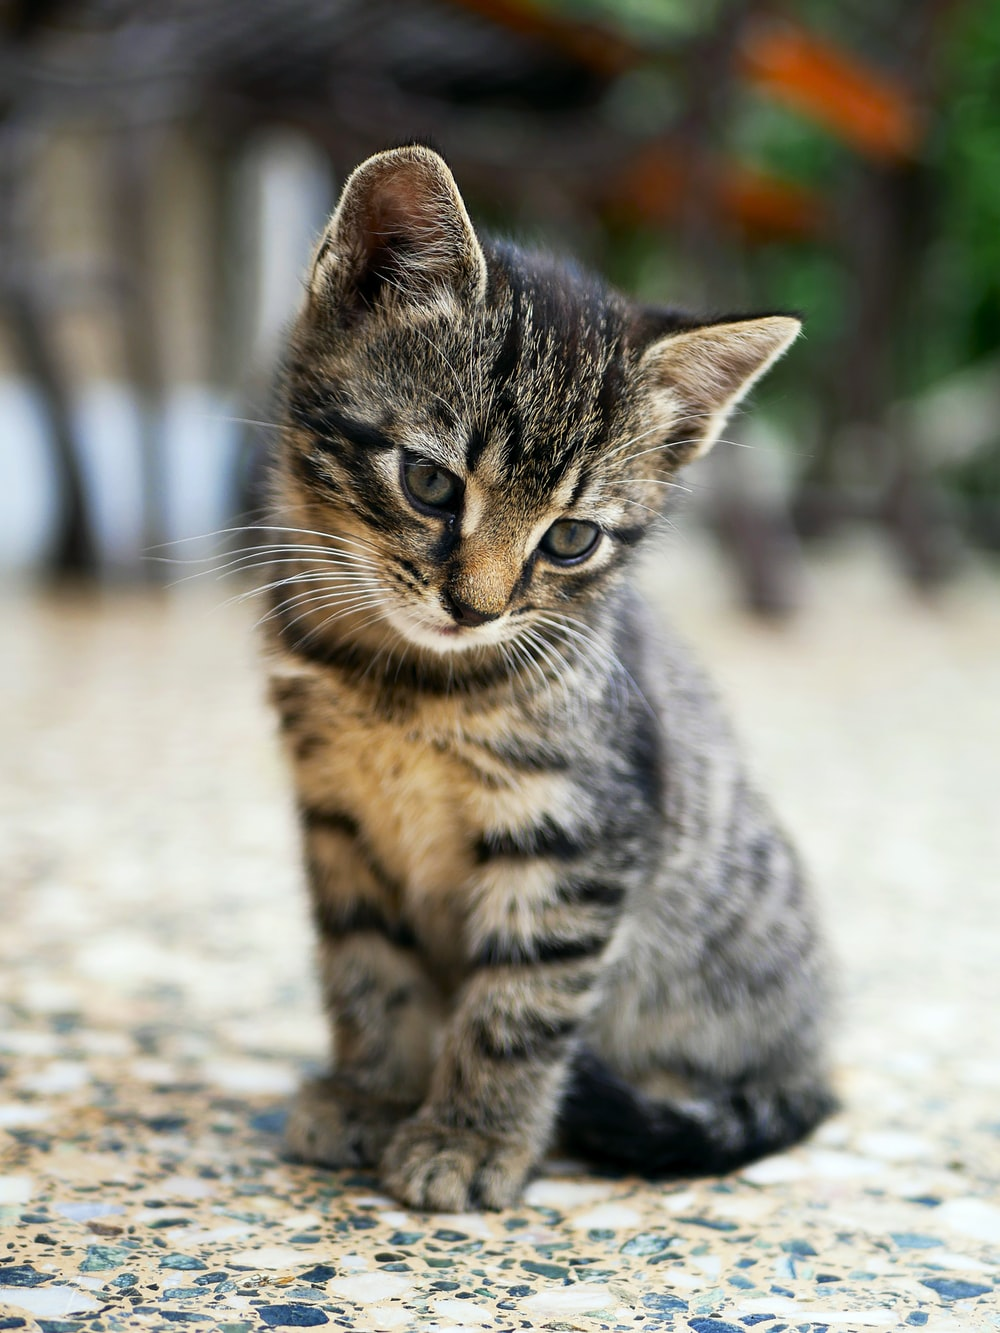 brown tabby kitten sitting on floor